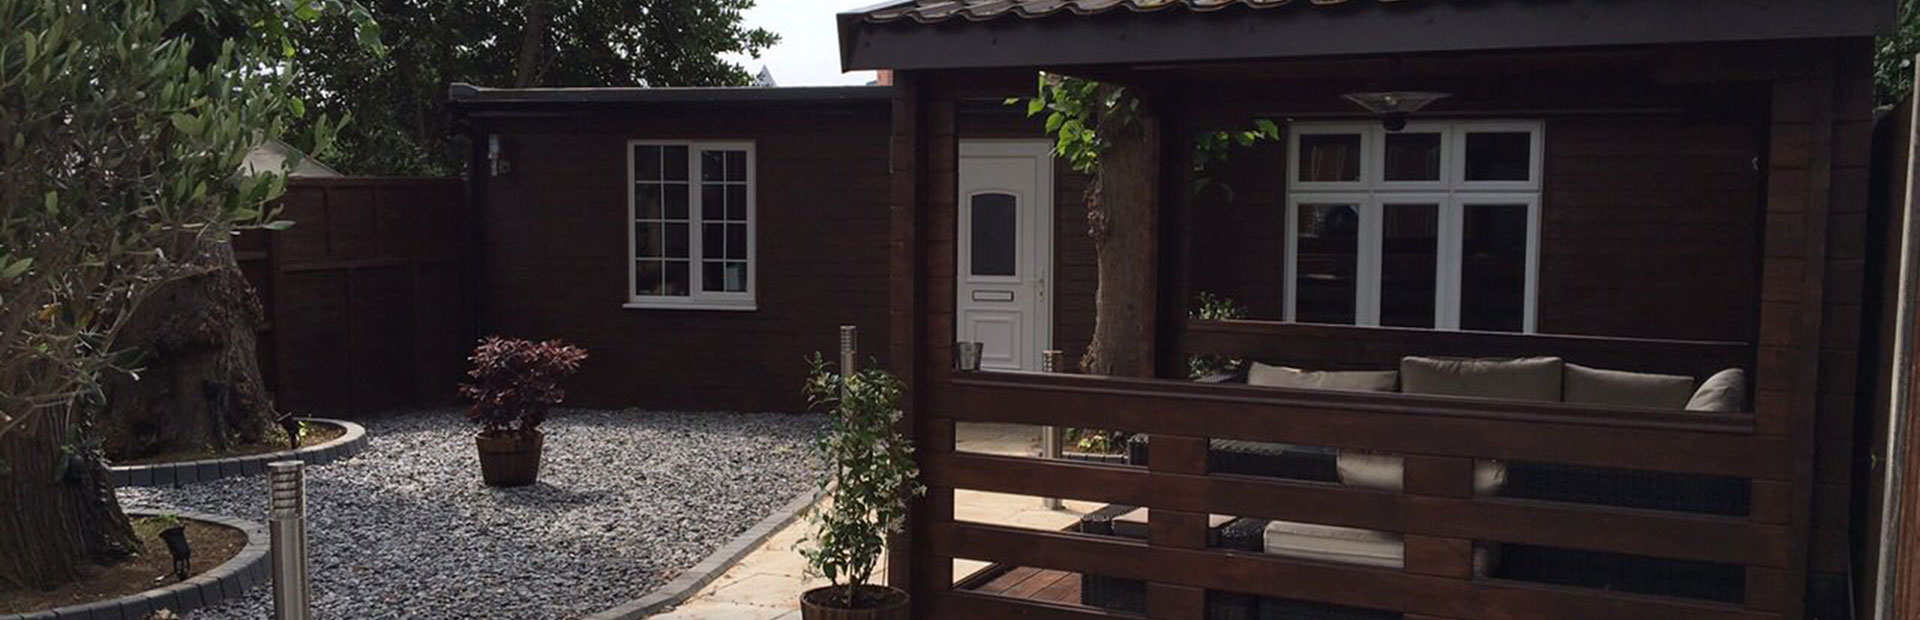 House Renovation Services In London Cost Of Rewiring A 2016 Garden Outbuildings